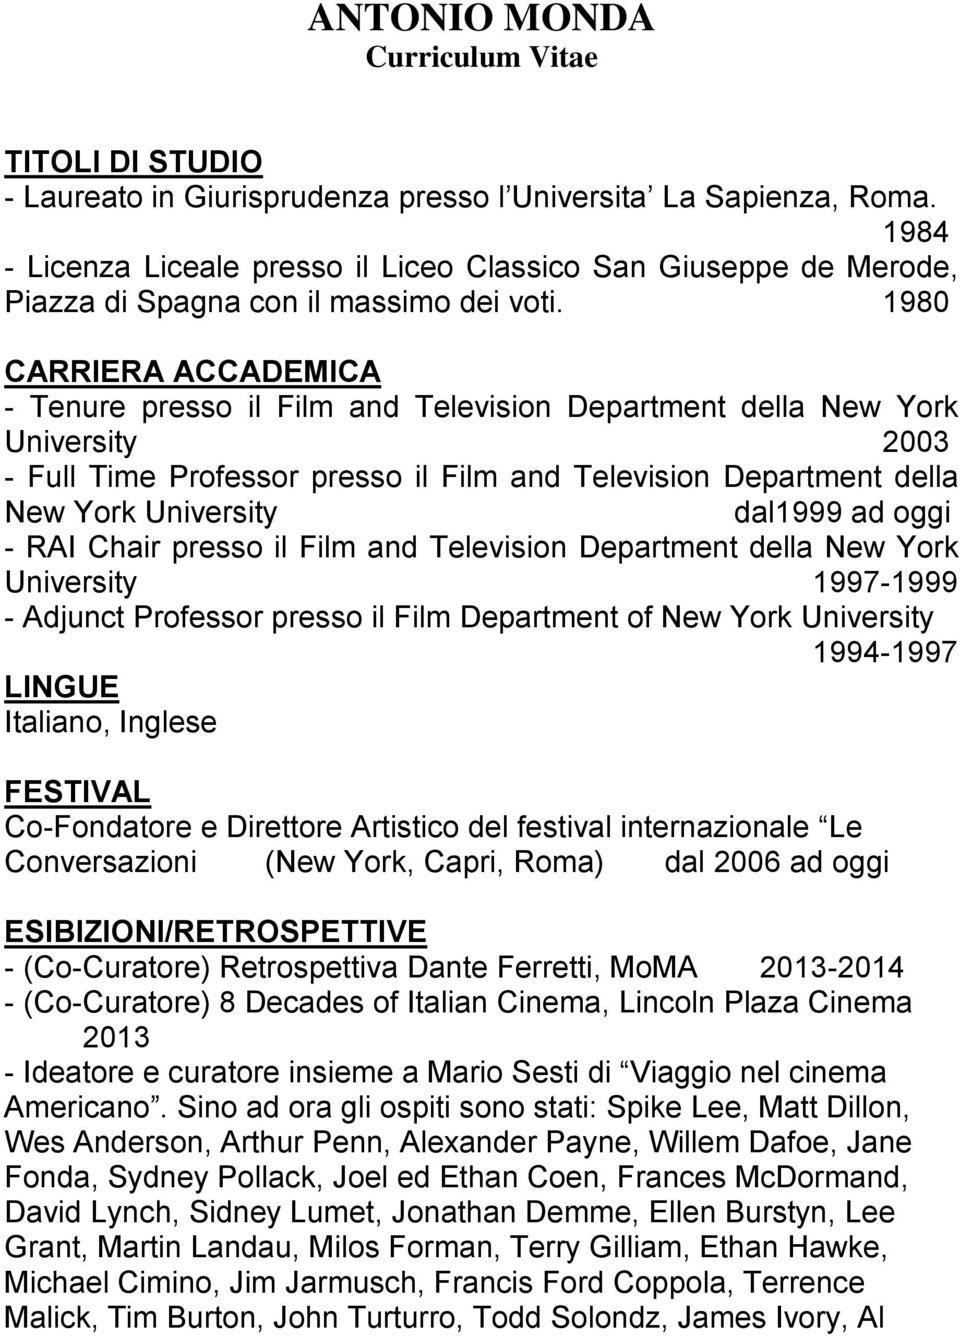 1980 CARRIERA ACCADEMICA - Tenure presso il Film and Television Department della New York University 2003 - Full Time Professor presso il Film and Television Department della New York University